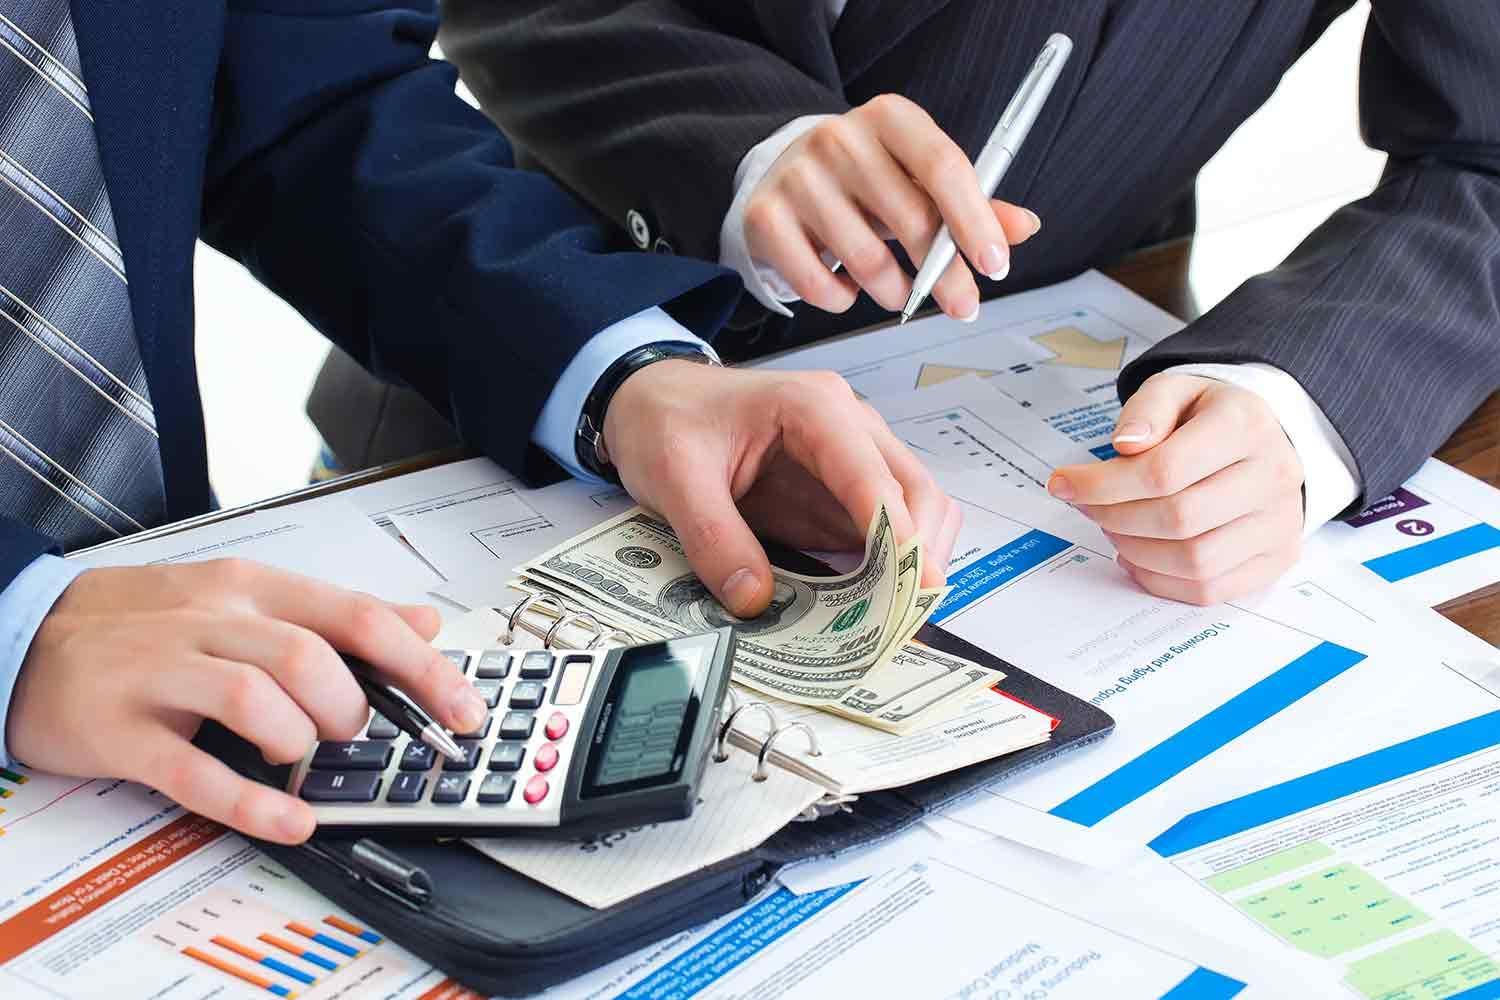 Build a Successful Business Budget With These 5 Tips